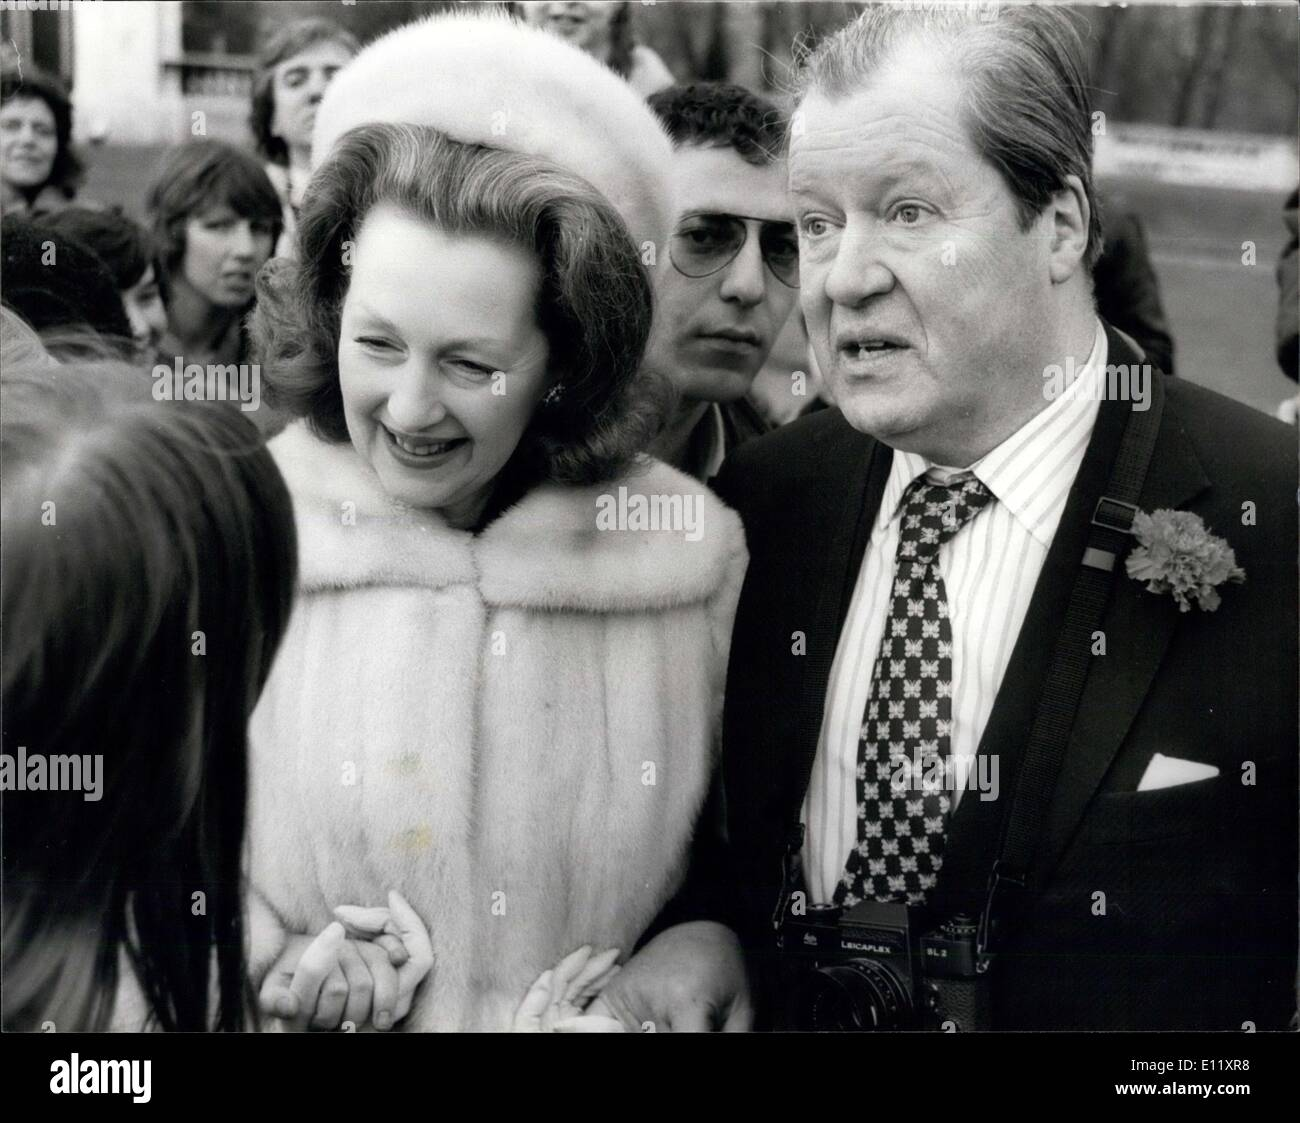 Countess Karen Spencer Feb 24 1981 Lady Diana S Father And Step Mother At The